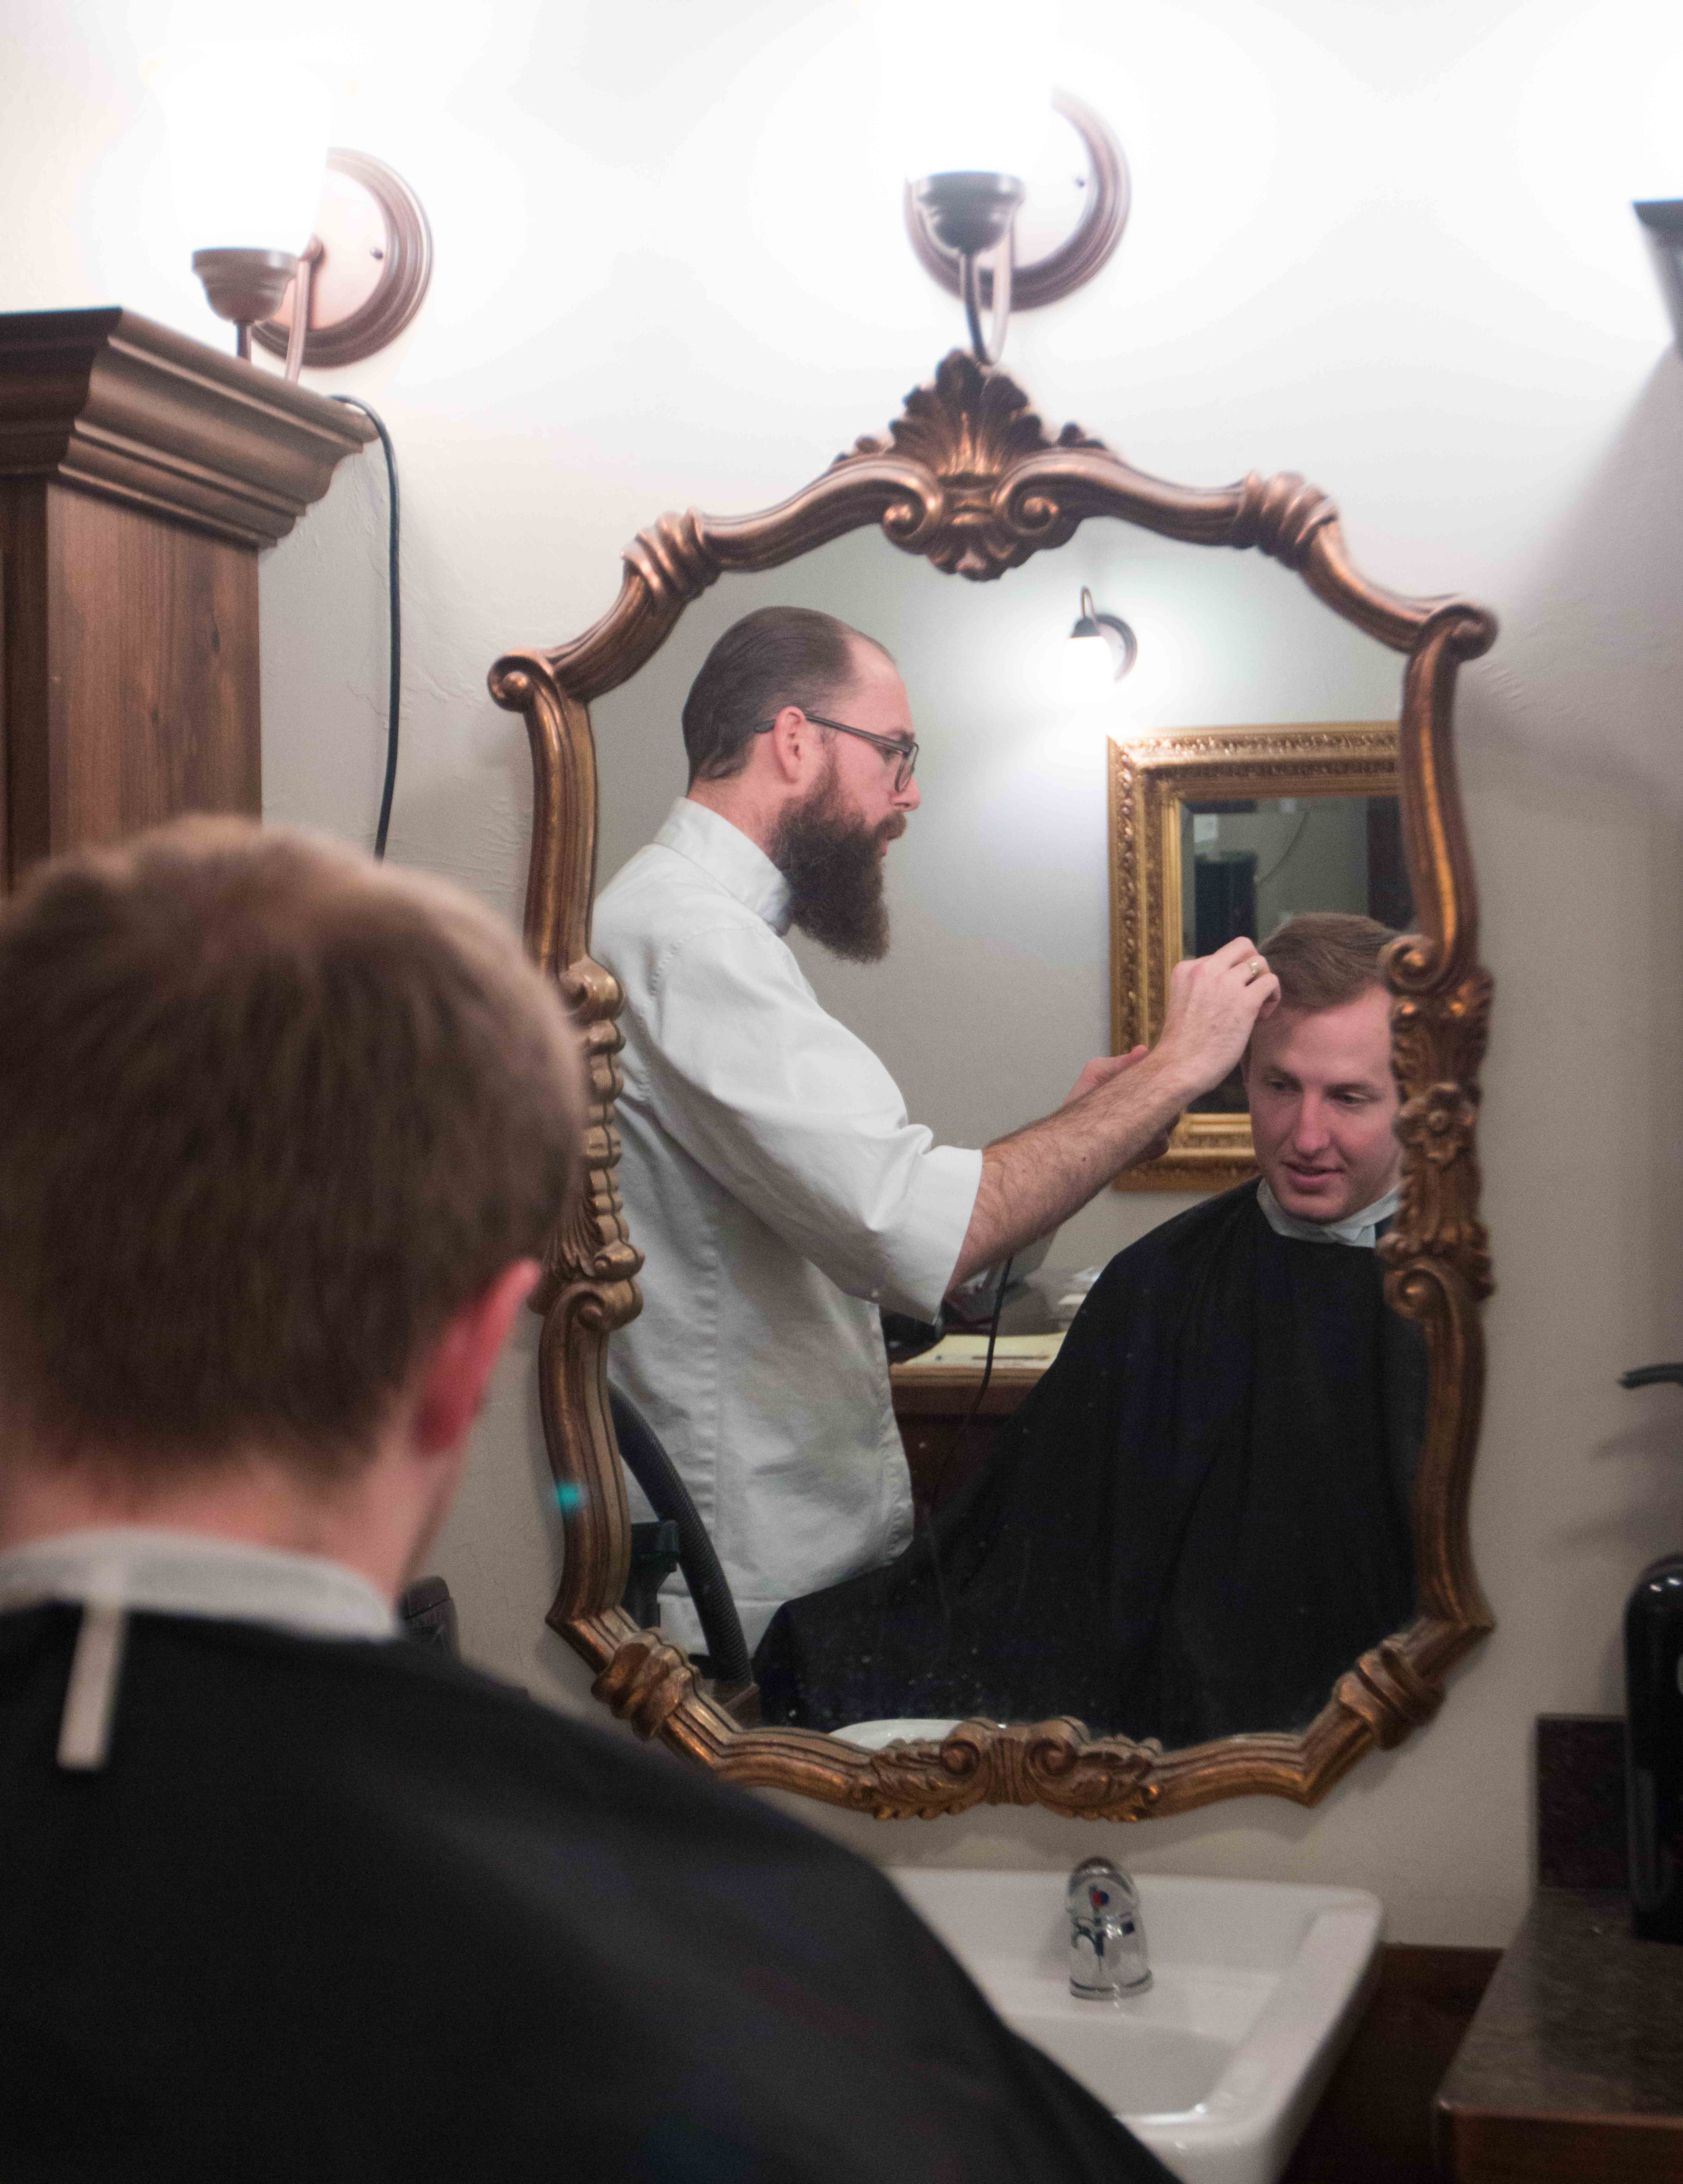 Provo Musician Styling Hair And Music The Daily Universe